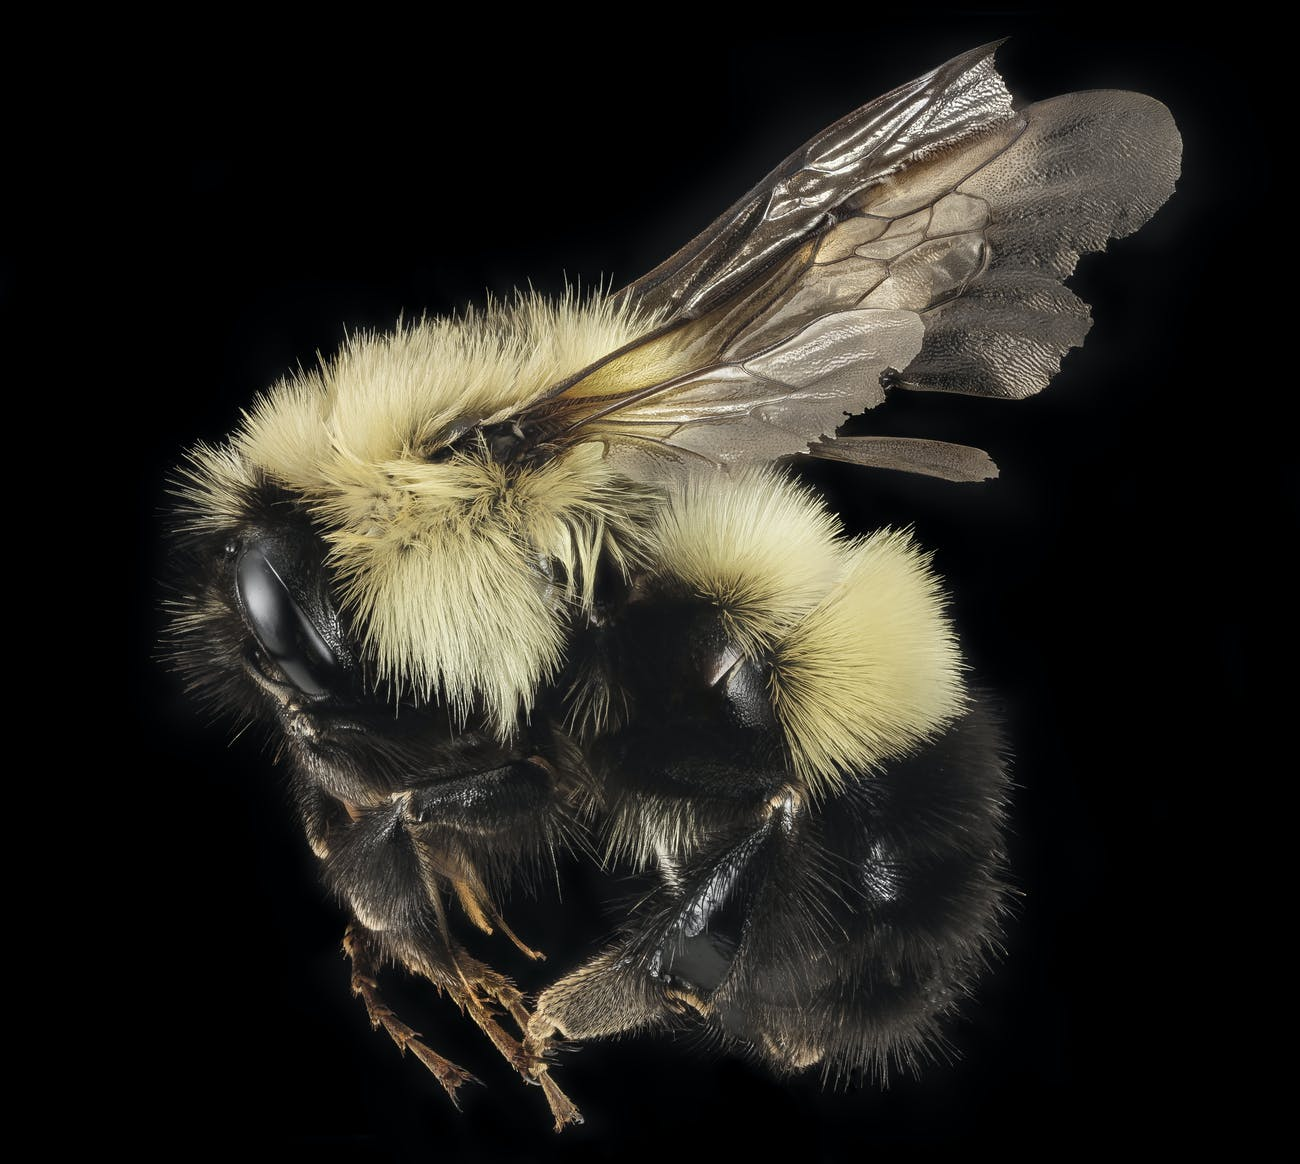 """A series of pictures of a queen and a male of the northernish bumble bee Bombus vagans. Still a reasonable common component of northern Appalachian systems, its been retreating from its lower elevation and southern edges over the last century. Whether the issues are climate change or the myriad of other factors that control what critter occurs in what place is hard to come to firm conclusions. In any case these came from a collecting expedition and Bioblitz in the Adirondack Mountains of New York. Note the long face and the first 2 abdomominal segments with yellow hairs. Plush! Photographs by Brooke Alexander.~~~~~~~~~~{{{{{{0}}}}}}~~~~~~~~~~ All photographs are public domain, feel free to download and use as you wish. Photography Information: Canon Mark II 5D, Zerene Stacker, Stackshot Sled, 65mm Canon MP-E 1-5X macro lens, Twin Macro Flash in Styrofoam Cooler, F5.0, ISO 100, Shutter Speed 200 Beauty is truth, truth beauty - that is all Ye know on earth and all ye need to know """" Ode on a Grecian Urn"""" John Keats You can also follow us on Instagram - account = USGSBIML Want some Useful Links to the Techniques We Use? Well now here you go Citizen: Art Photo Book: Bees: An Up-Close Look at Pollinators Around the World www.amazon.com/Bees-Up-Close-Pollinators-Around-World/dp/... Free Field Guide to Bee Genera of Marylandhttp://bio2.elmira.edu/fieldbio/beesofmarylandbookversion1.pdf Basic USGSBIML set up: www.youtube.com/watch?v=S-yvIsucOY USGSBIML Photoshopping Technique: Note that we now have added using the burn tool at 50% opacity set to shadows to clean up the halos that bleed into the black background from """"hot"""" color sections of the picture. www.youtube.com/watch?v=Bdmx8zqvN4 Bees of Maryland Organized by Taxa with information on each Genus www.flickr.com/photos/usgsbiml/collections PDF of Basic USGSBIML Photography Set Up: ftp://ftpext.usgs.gov/pub/er/md/laurel/Droege/How%20to%20Take%20MacroPhotographs%20of%20Insects%20BIML%20Lab2.pdf Google Hangout Demonstration"""